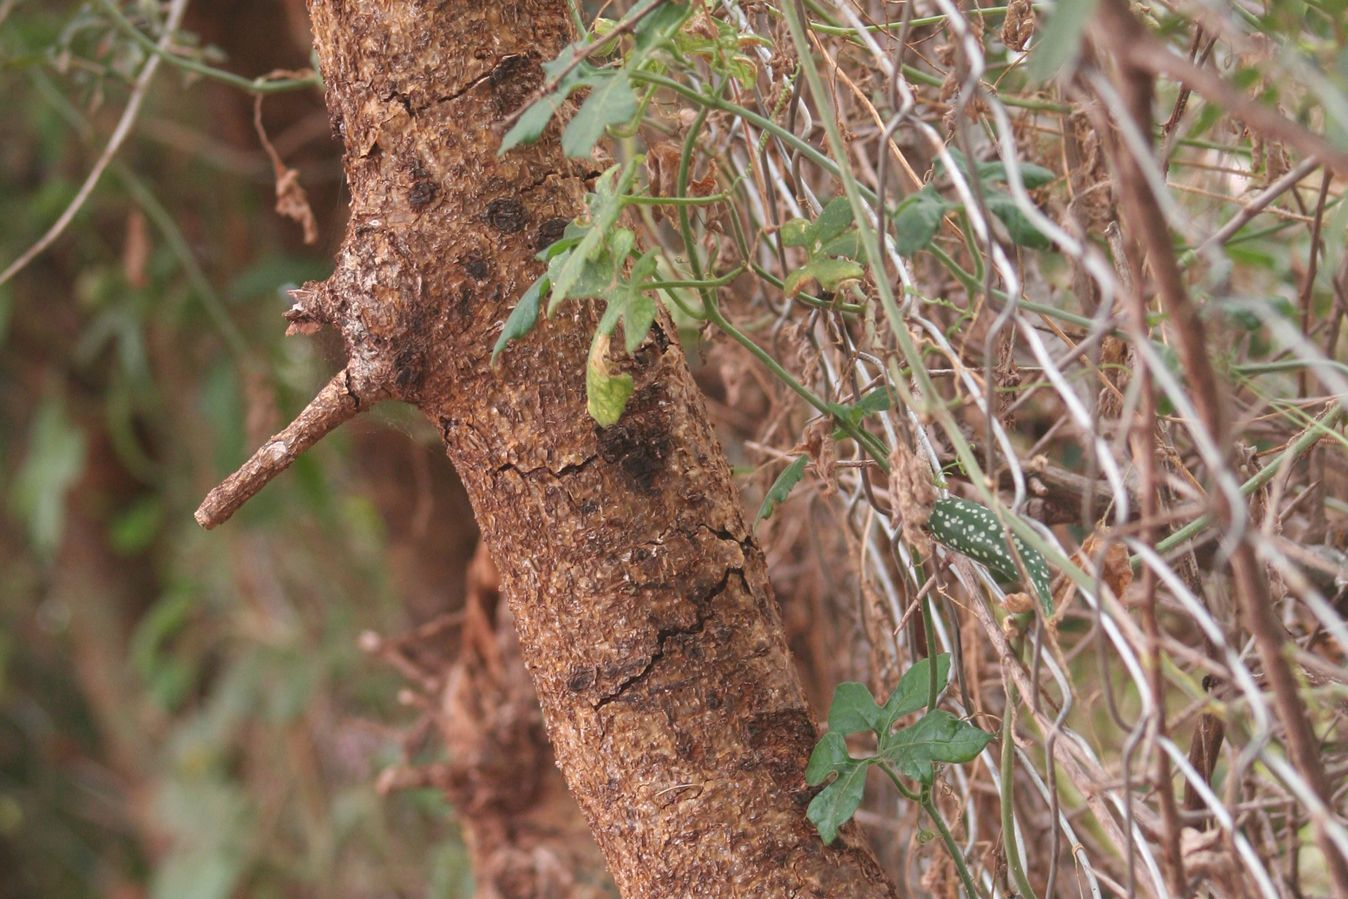 A Commiphora tree branch used in one of APW's Living Walls